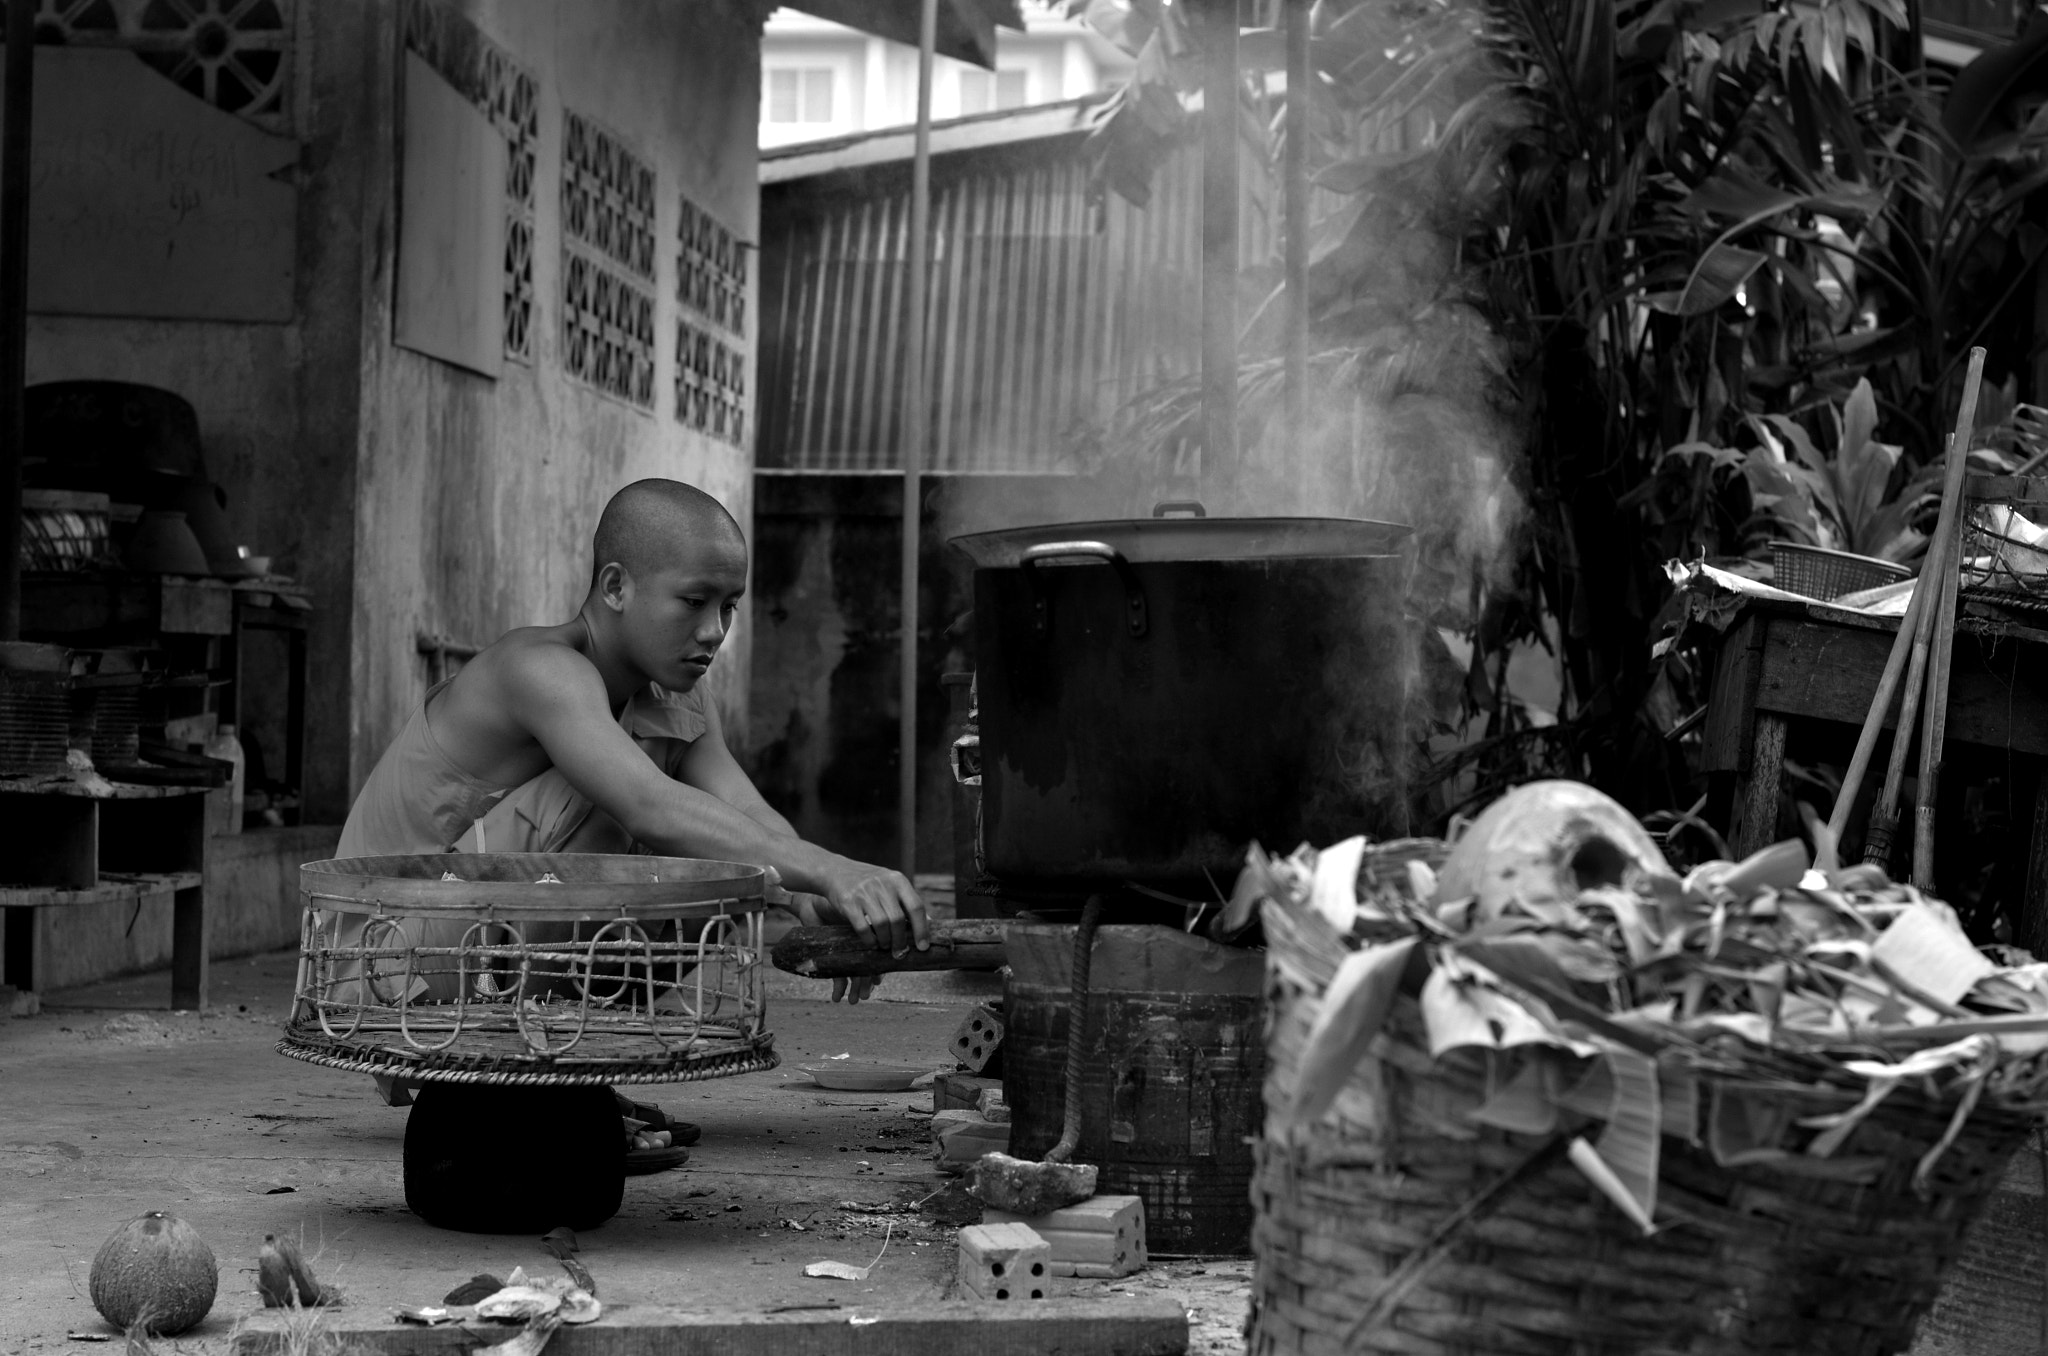 Photograph Vientiane - 2013 by Charlie HOANG on 500px